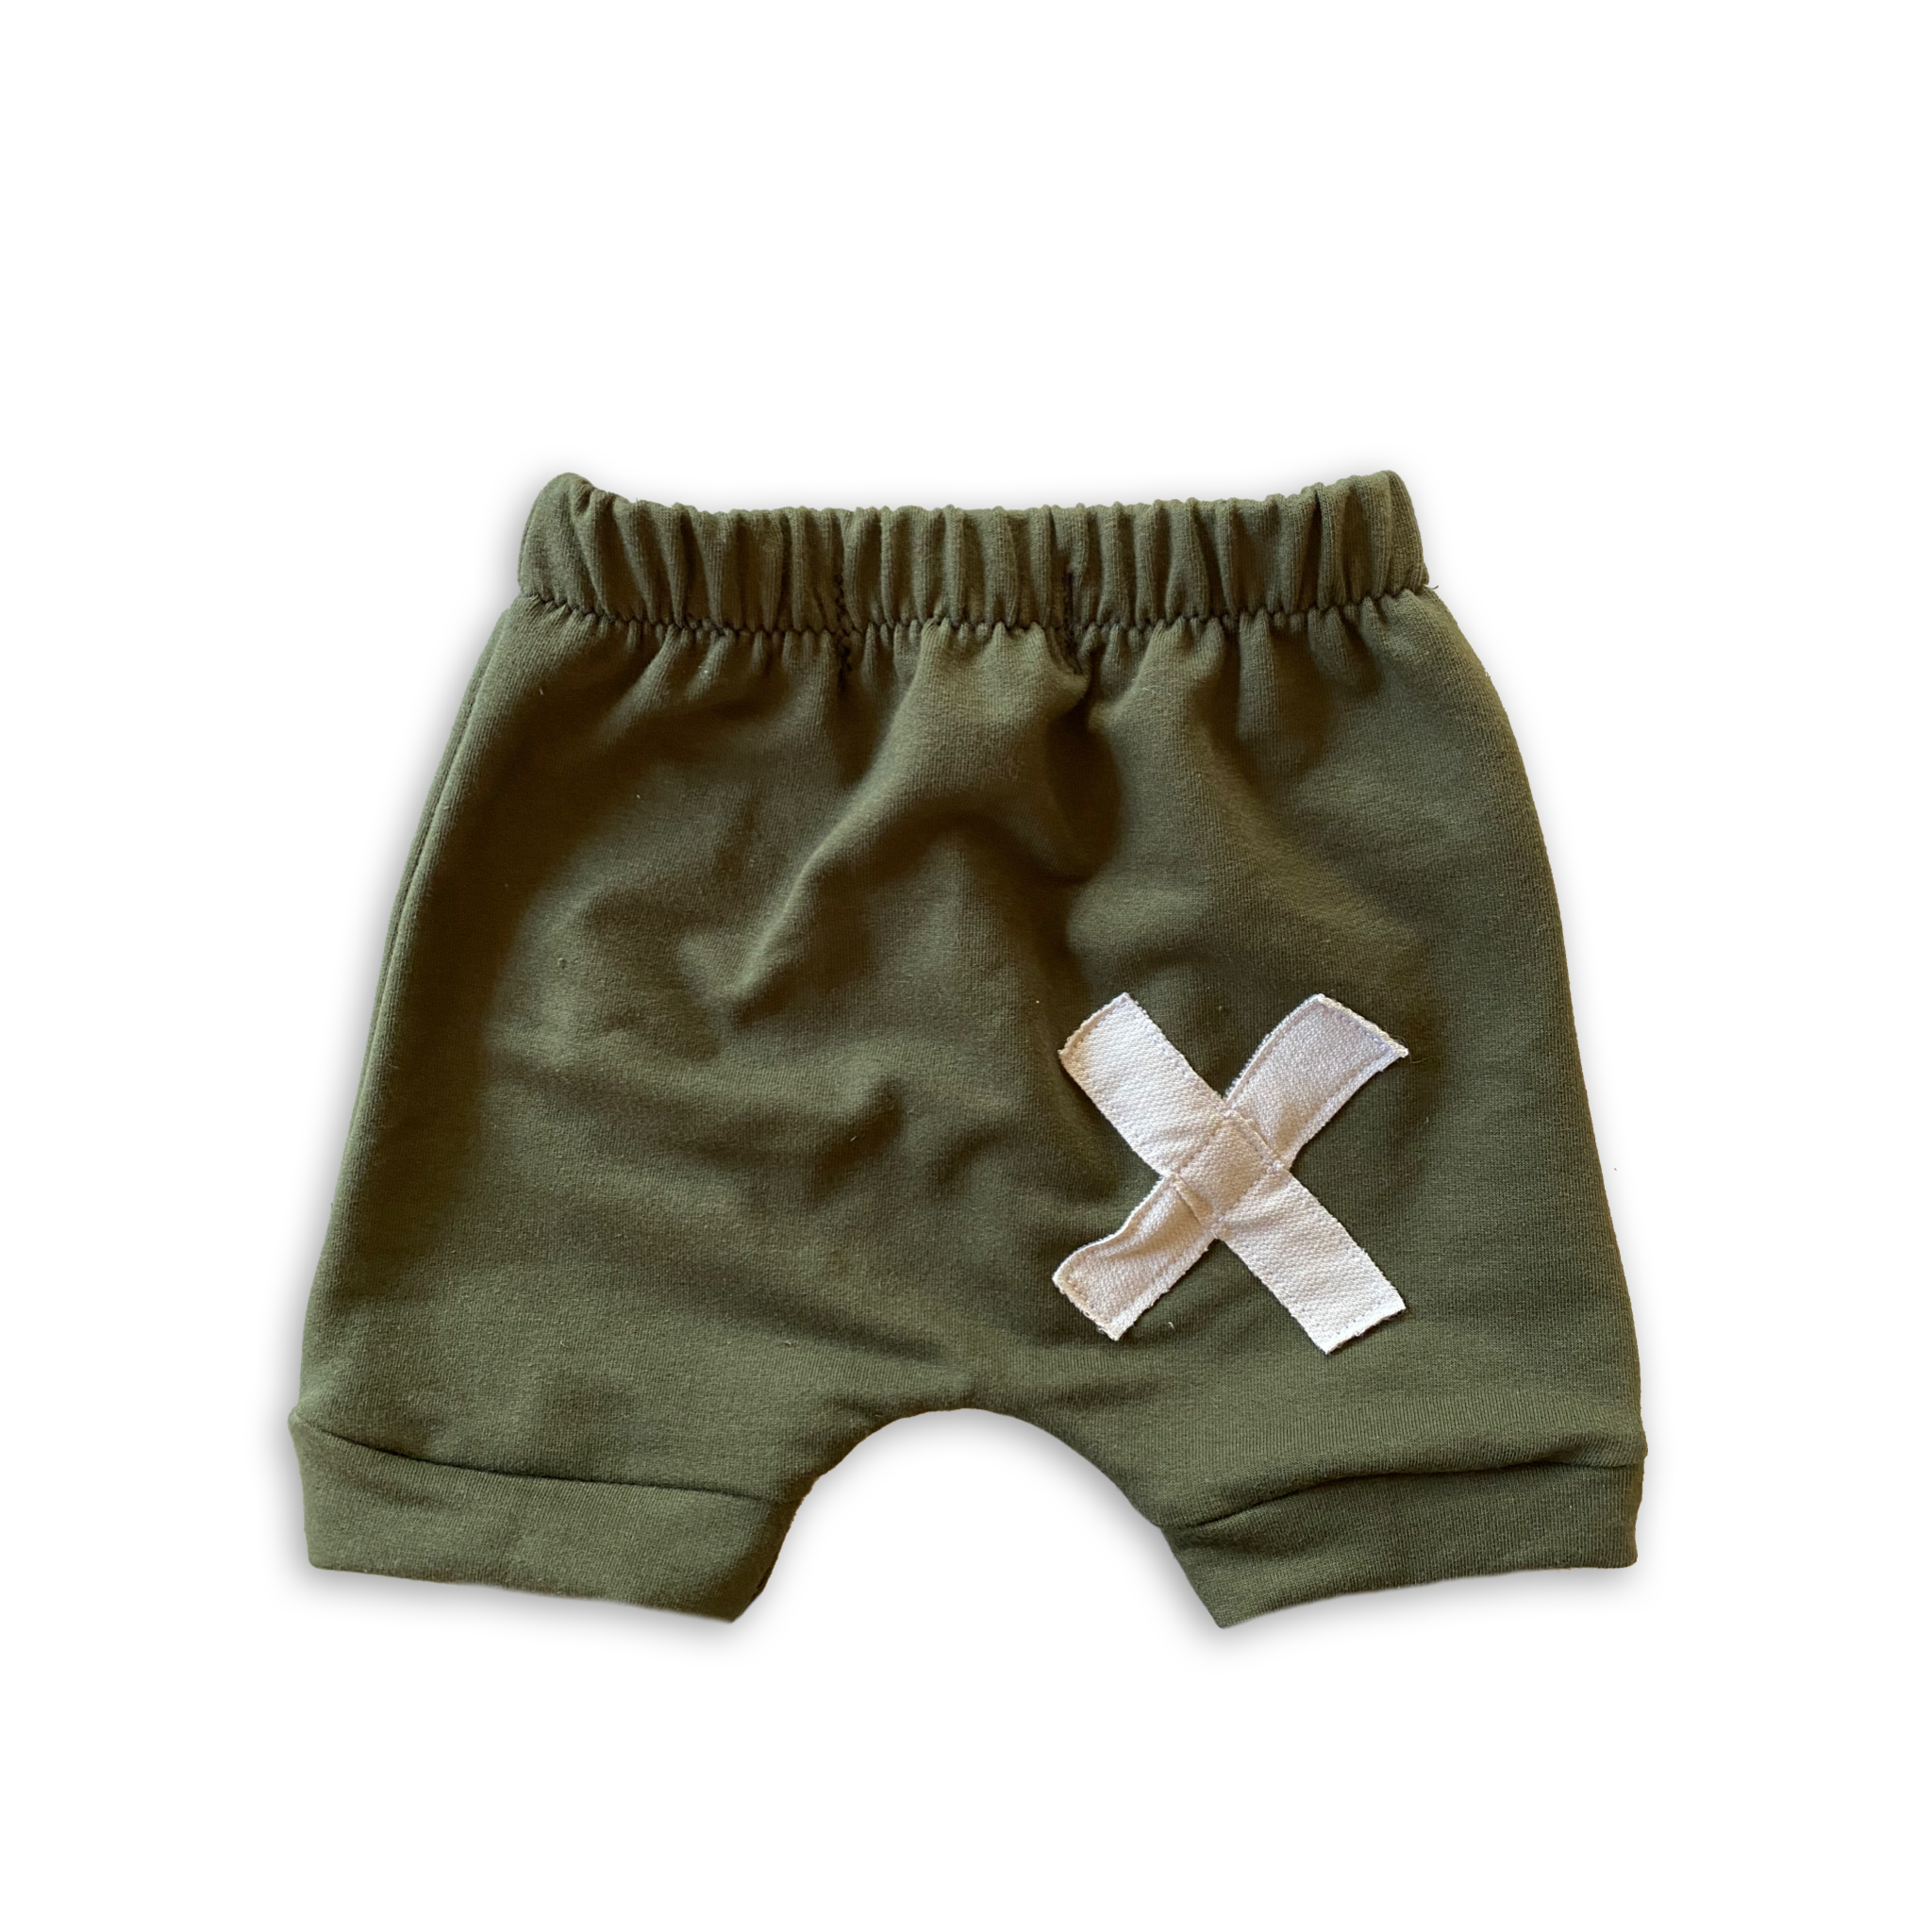 X Patchwork Crew Shorts in Eucalyptus